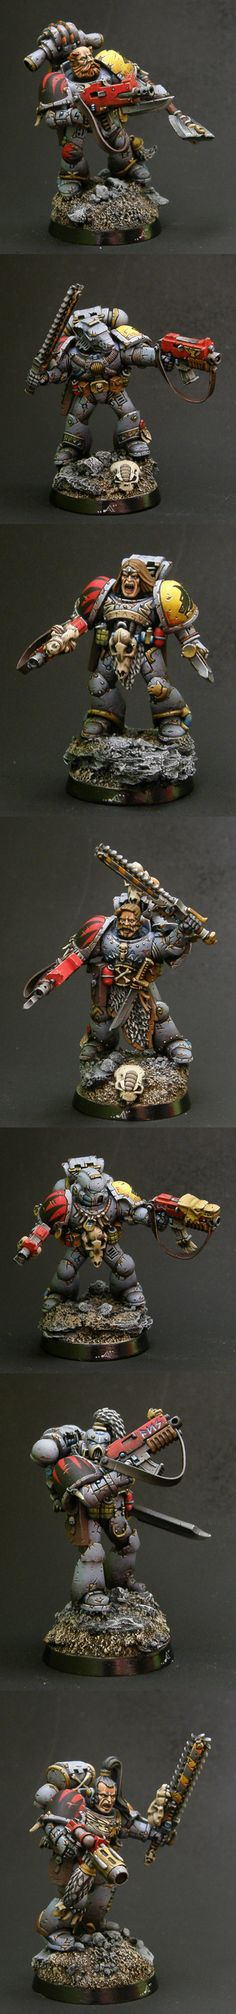 Space Wolves. The detail is fantastic